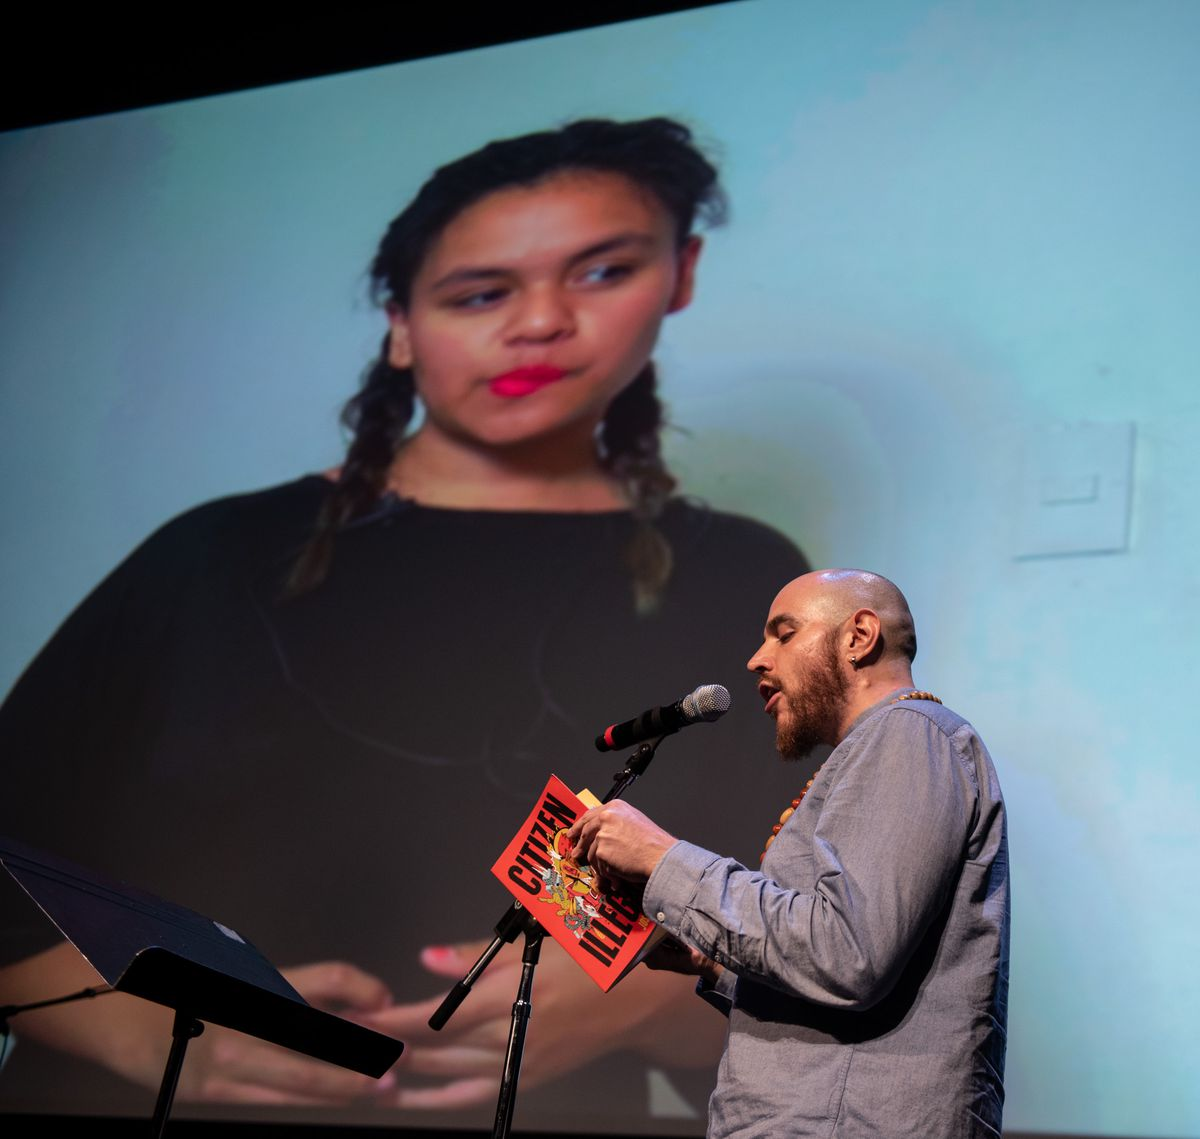 Mexican-American poet Jose Olivares and Mexico-City based poet Jimena Gonzales collaborate via Skype at the 2018 Lit & Luz Festival in Chicago.